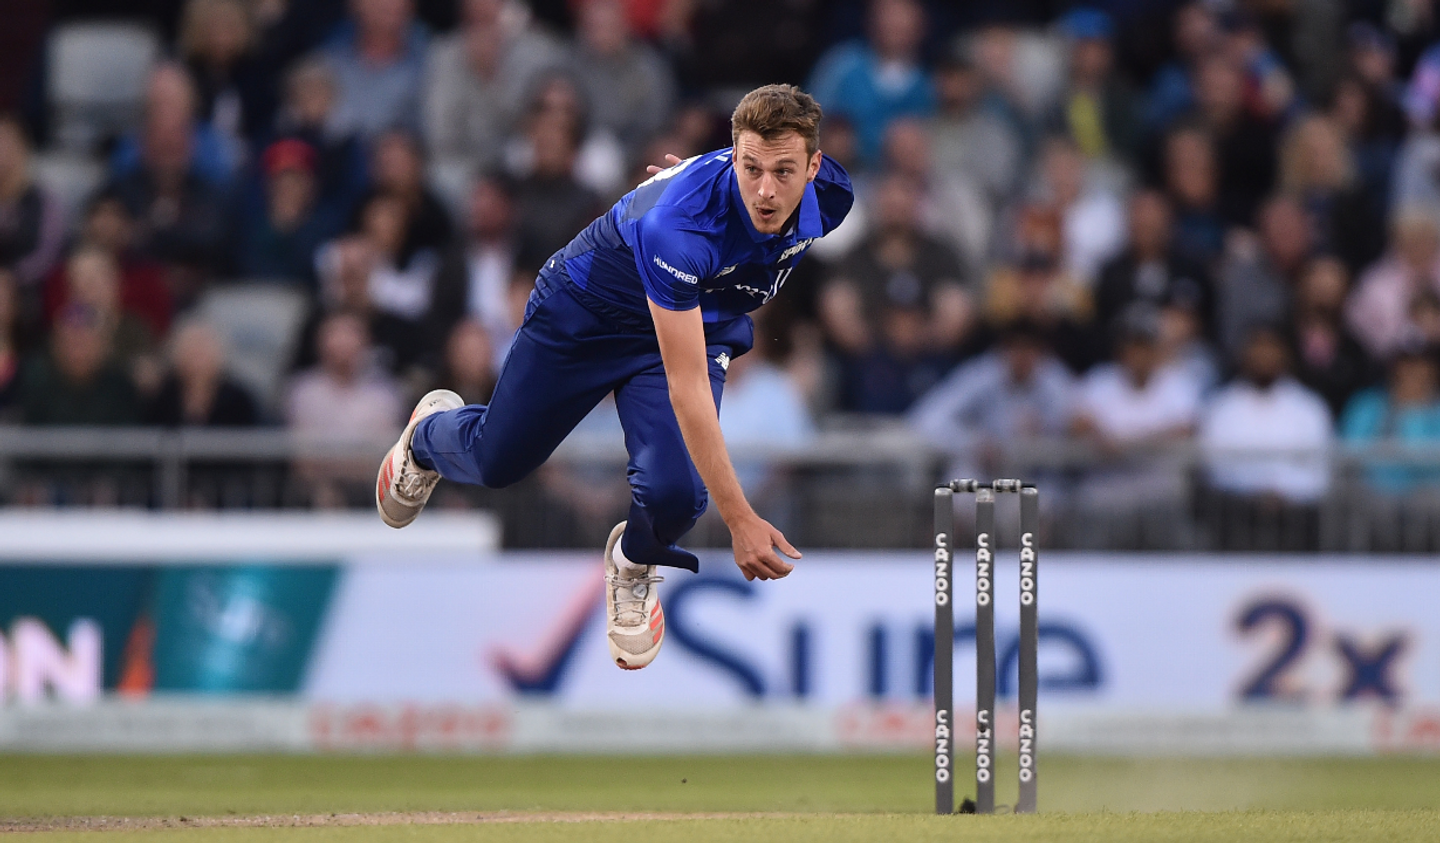 Brad Wheal helped to get the Spirit's campaign off the ground